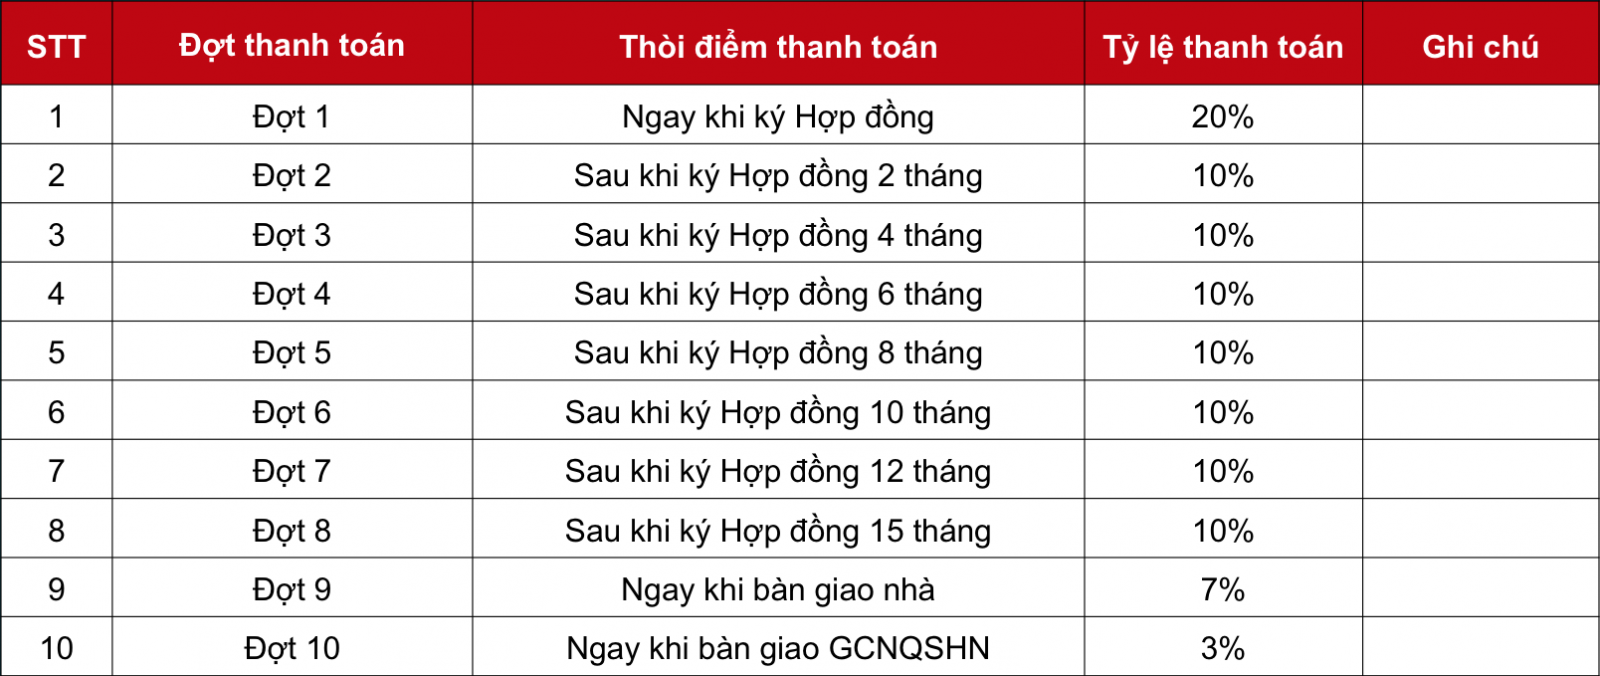 tien do thanh toan mua can